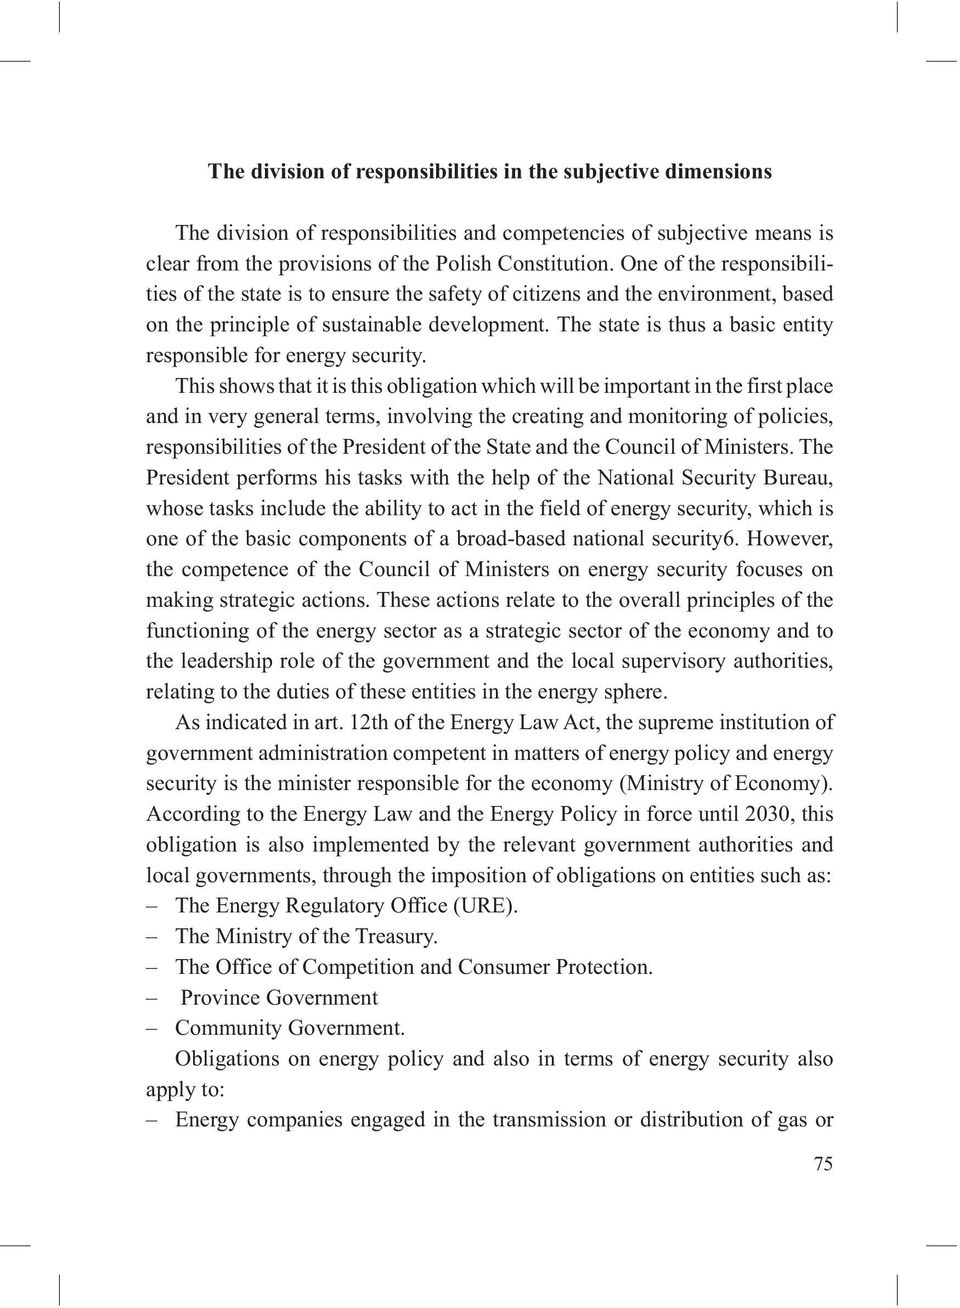 The state is thus a basic entity responsible for energy security.